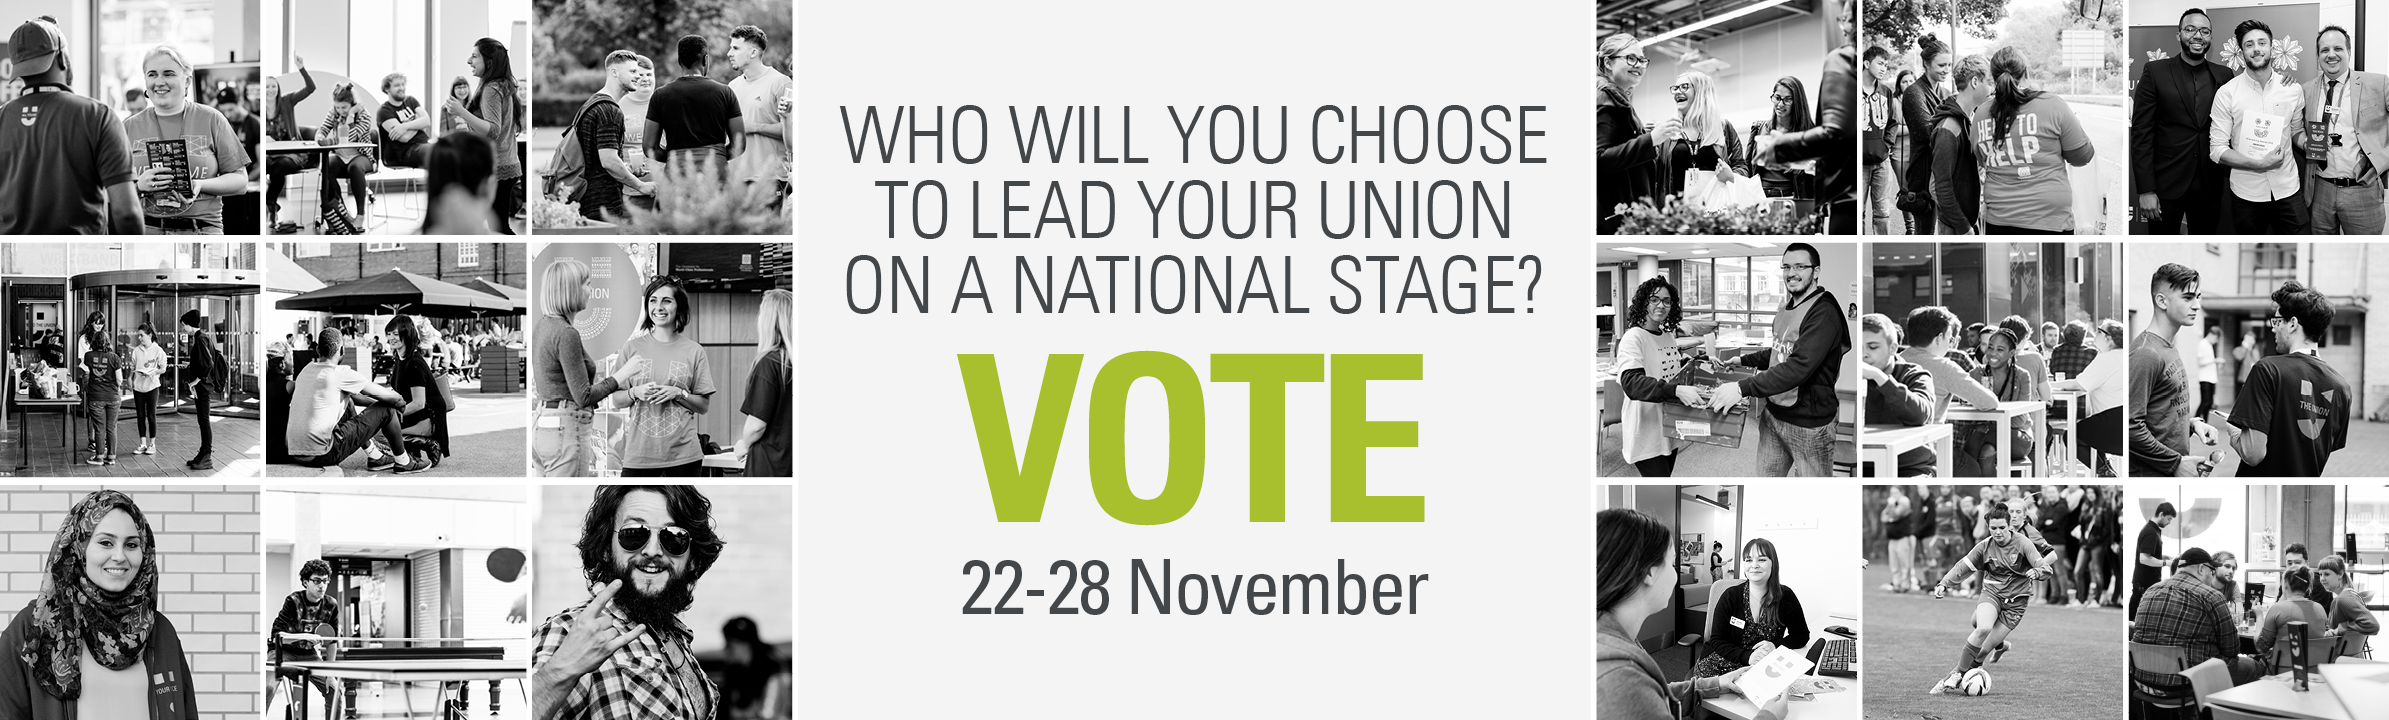 NUS elections vote page banner